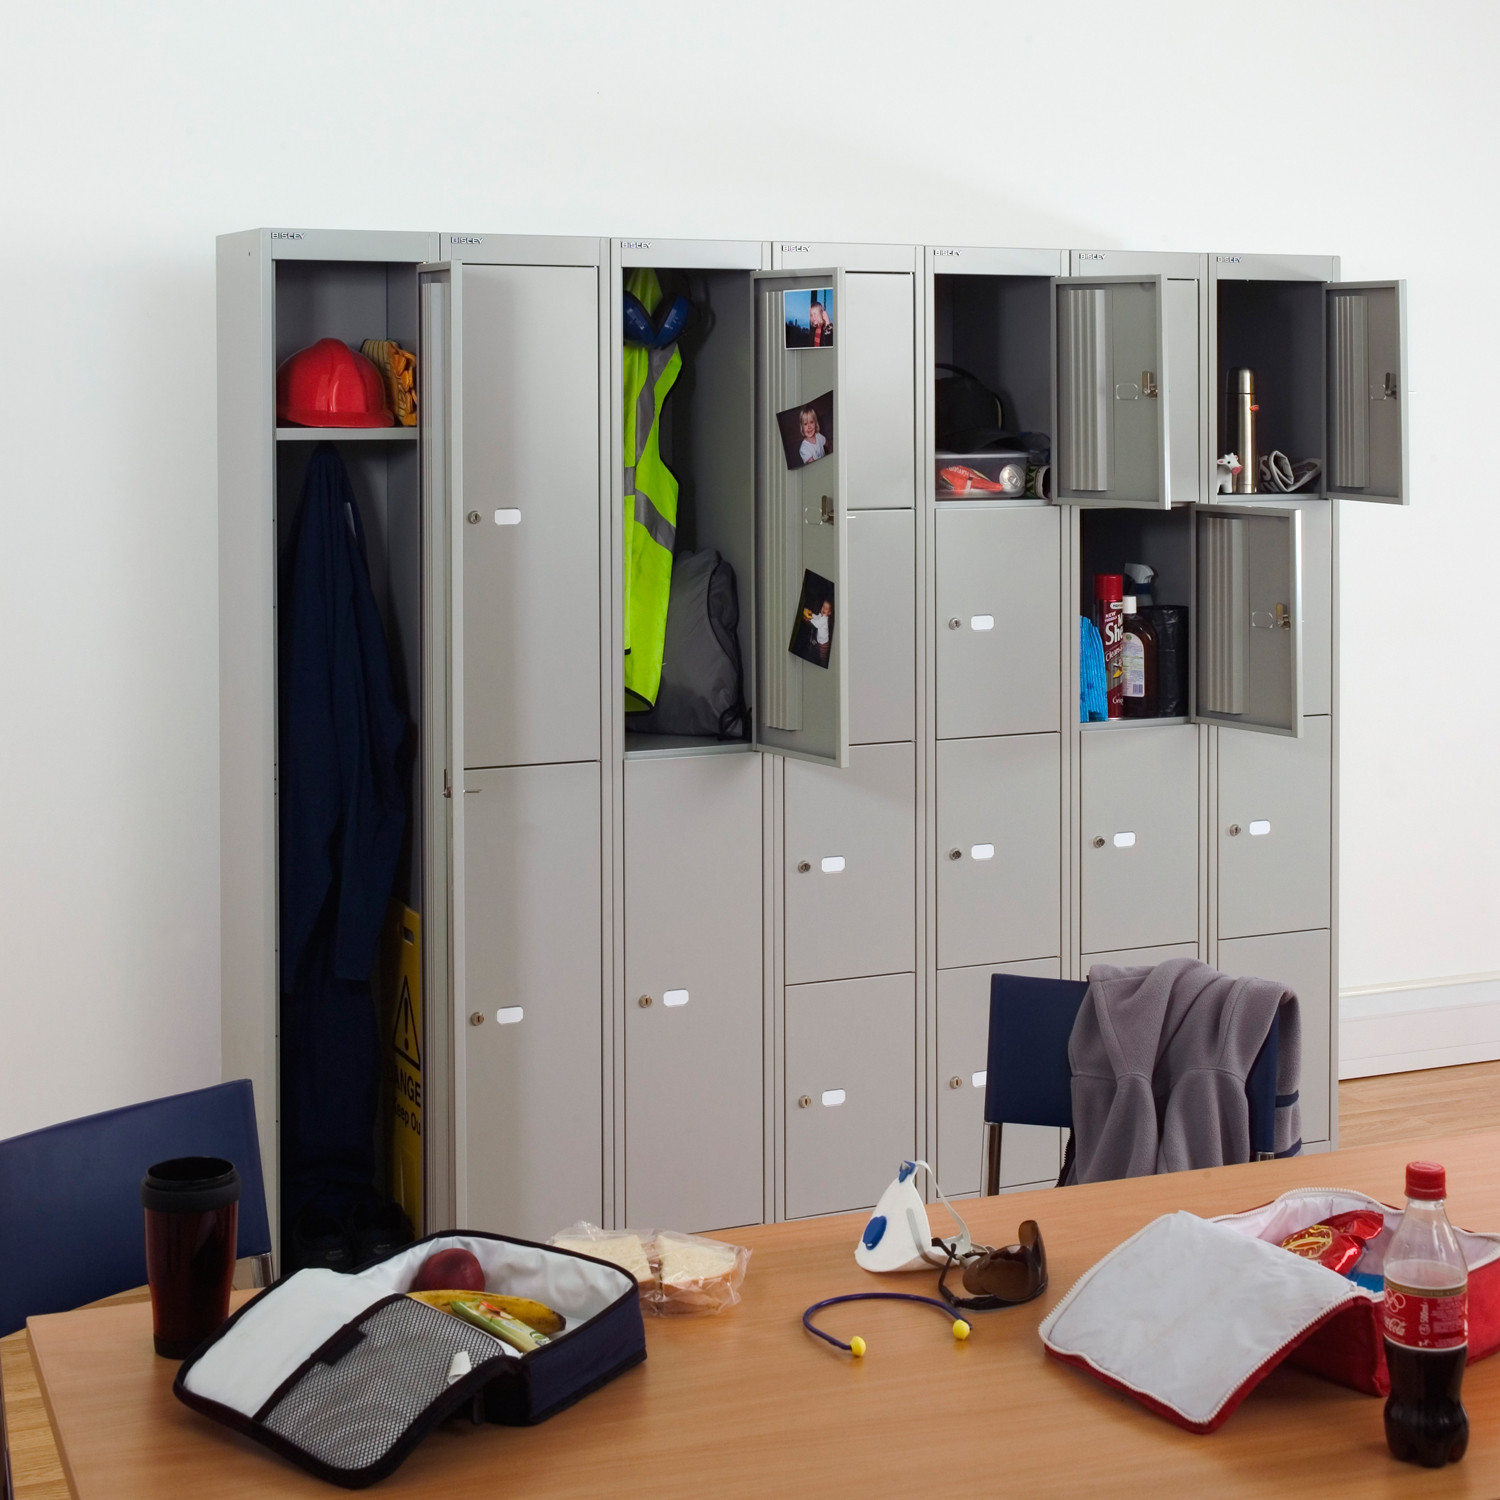 CLK Secure Personal Storage Units